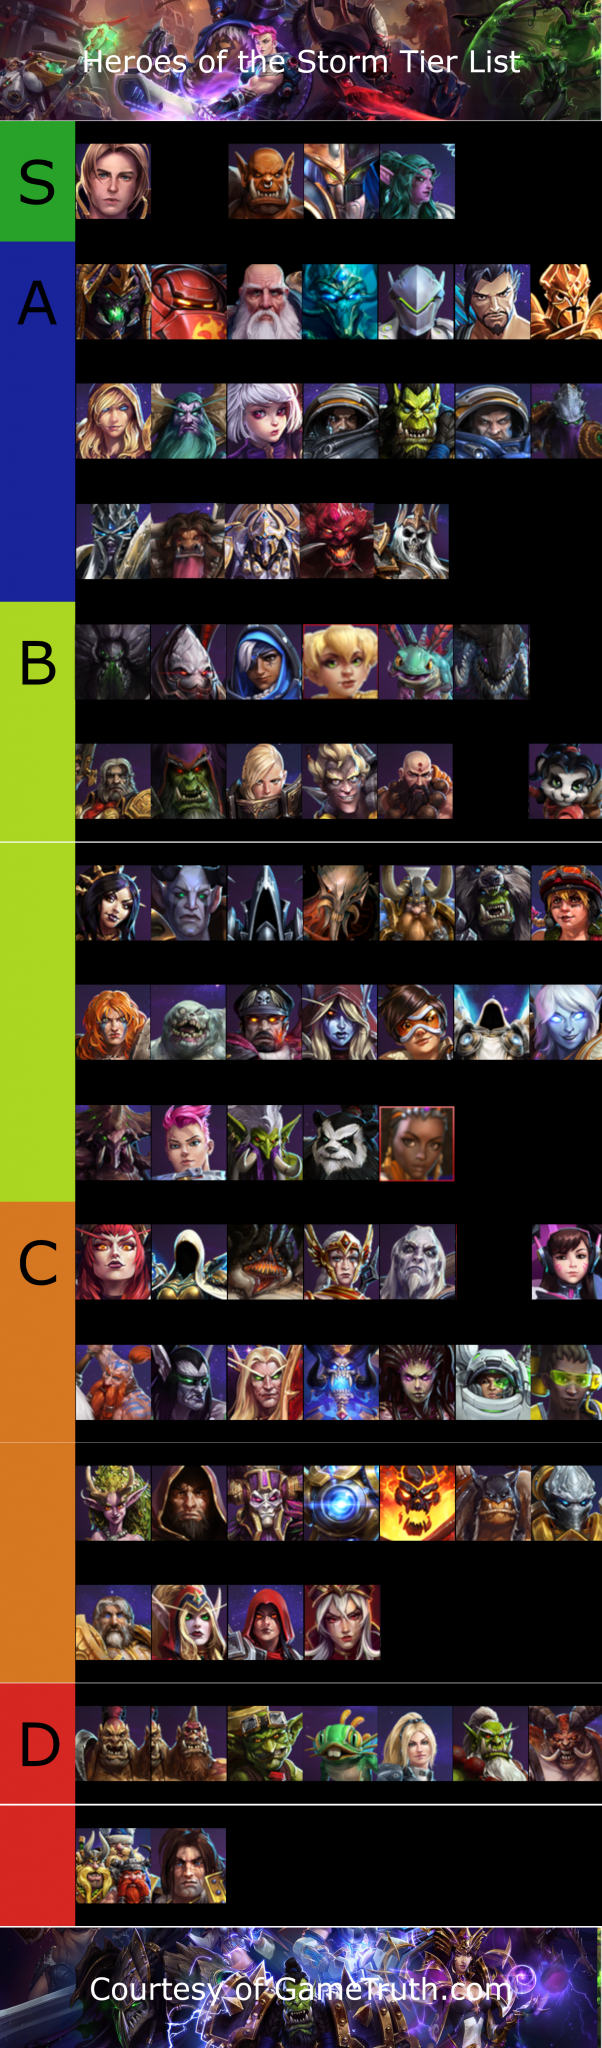 Heroes Of The Storm Tier List September 2020 Game Truth Contribute to zergov/hotslogs development by creating an account on github. heroes of the storm tier list